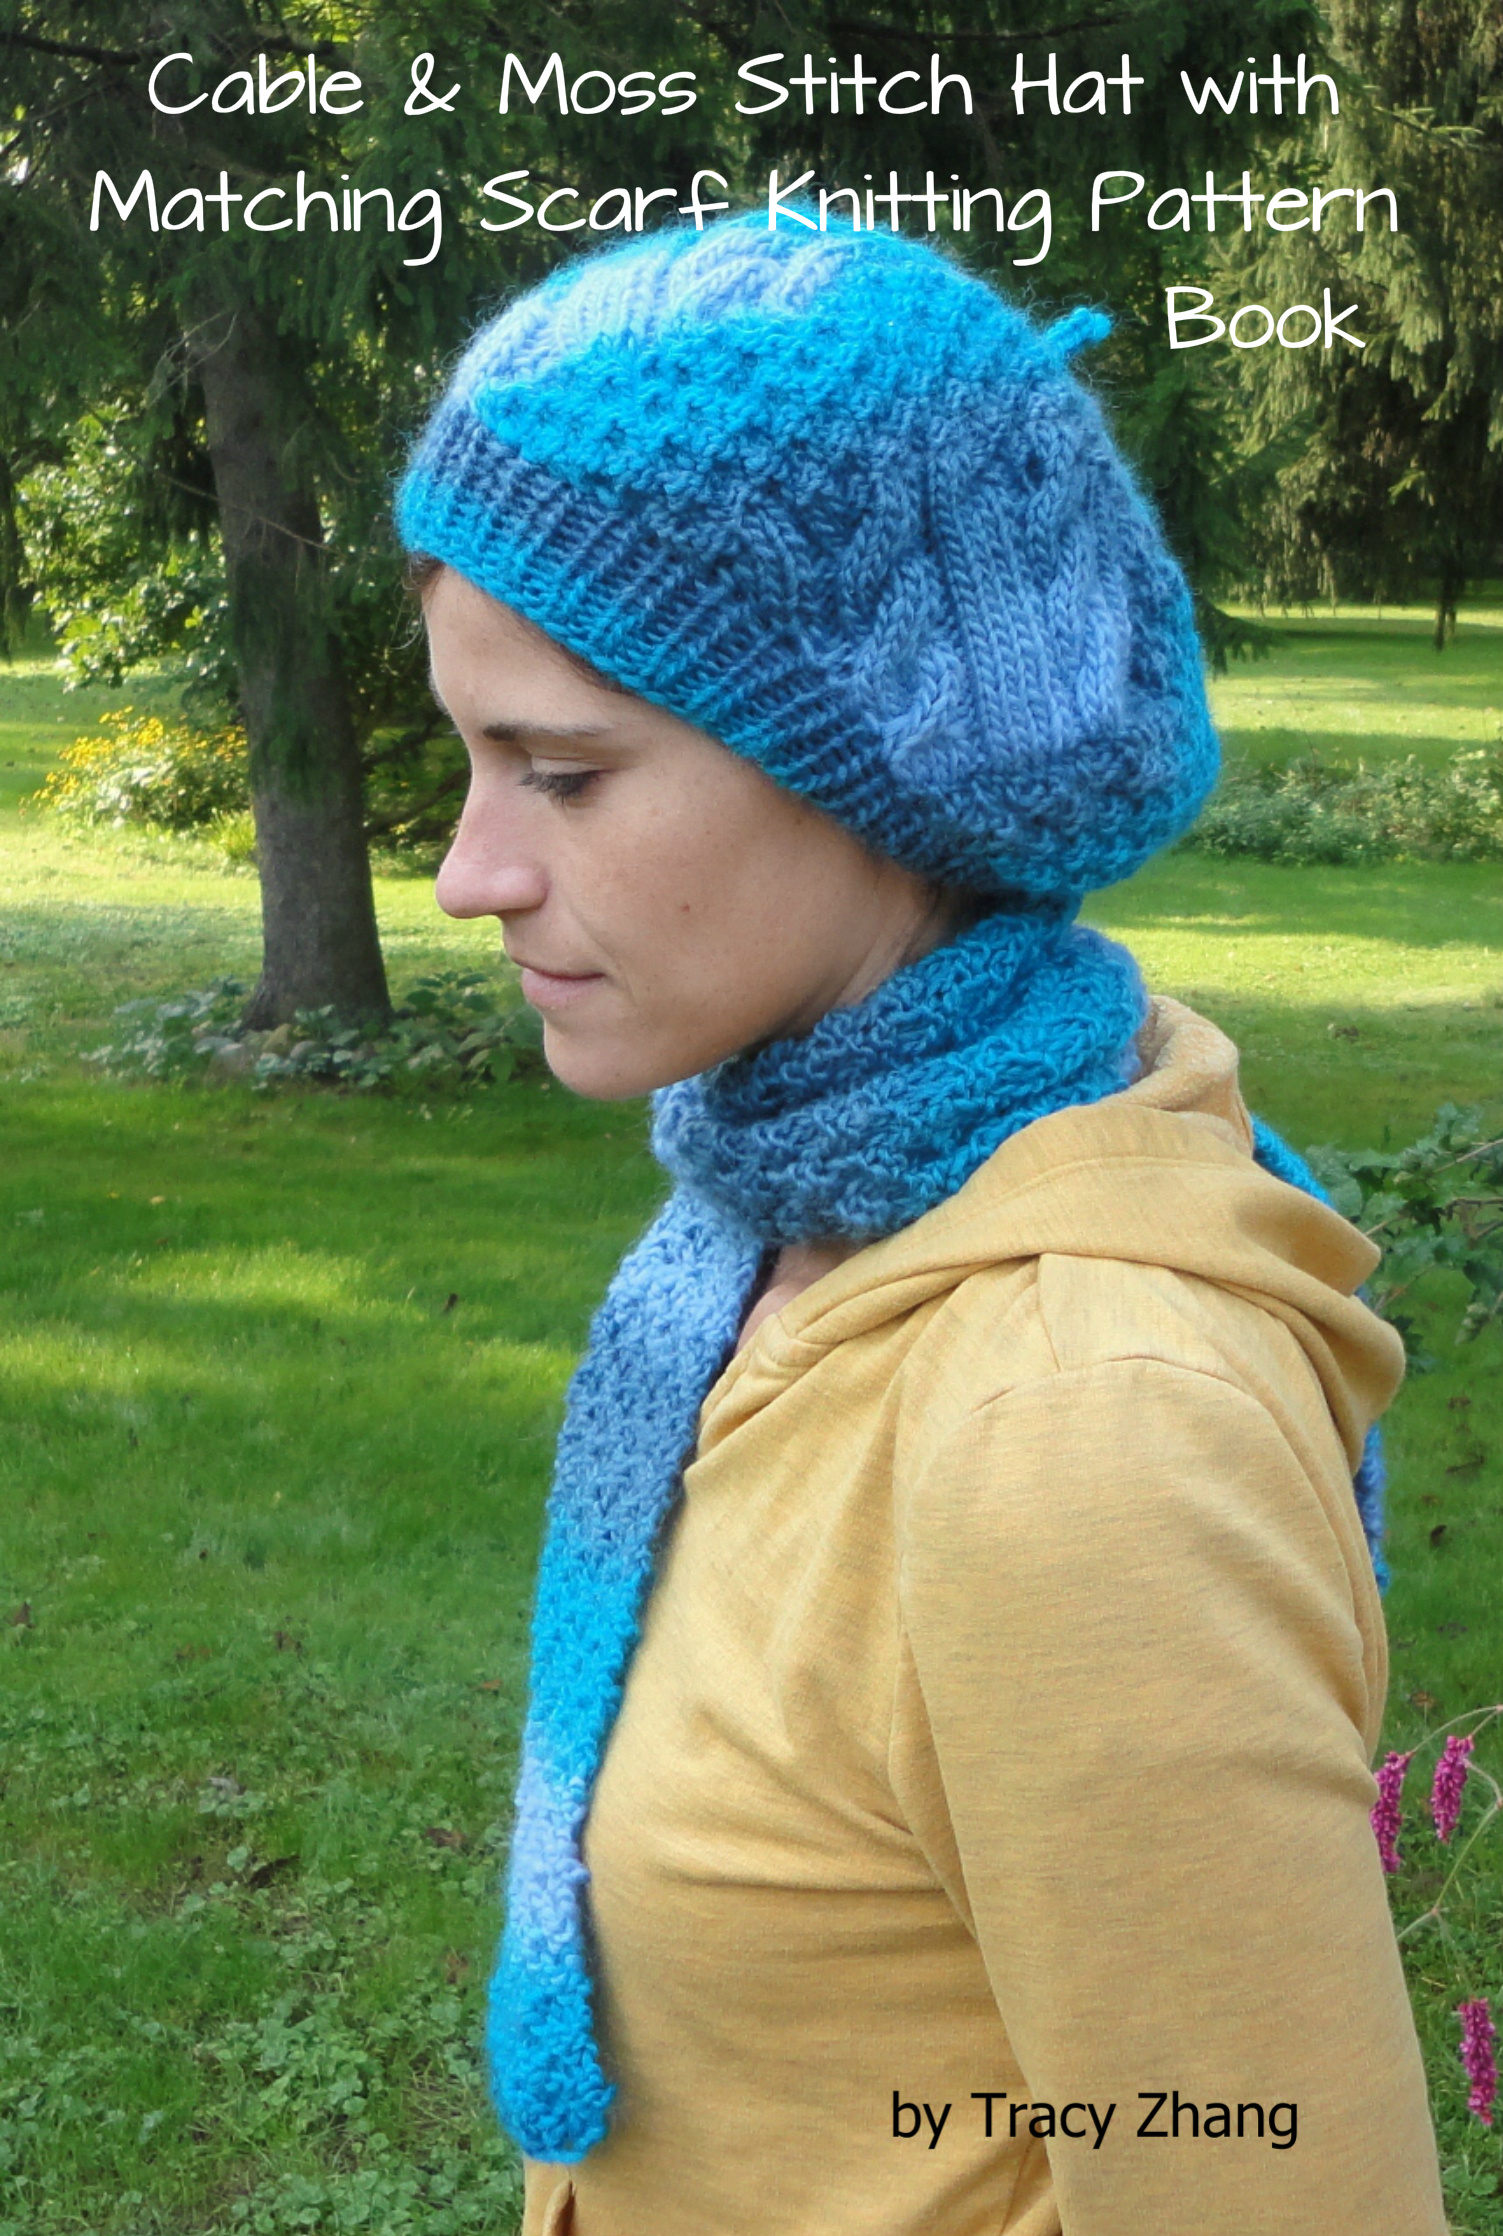 Smashwords Aran Inspired Cable And Moss Stitch Hat With Matching